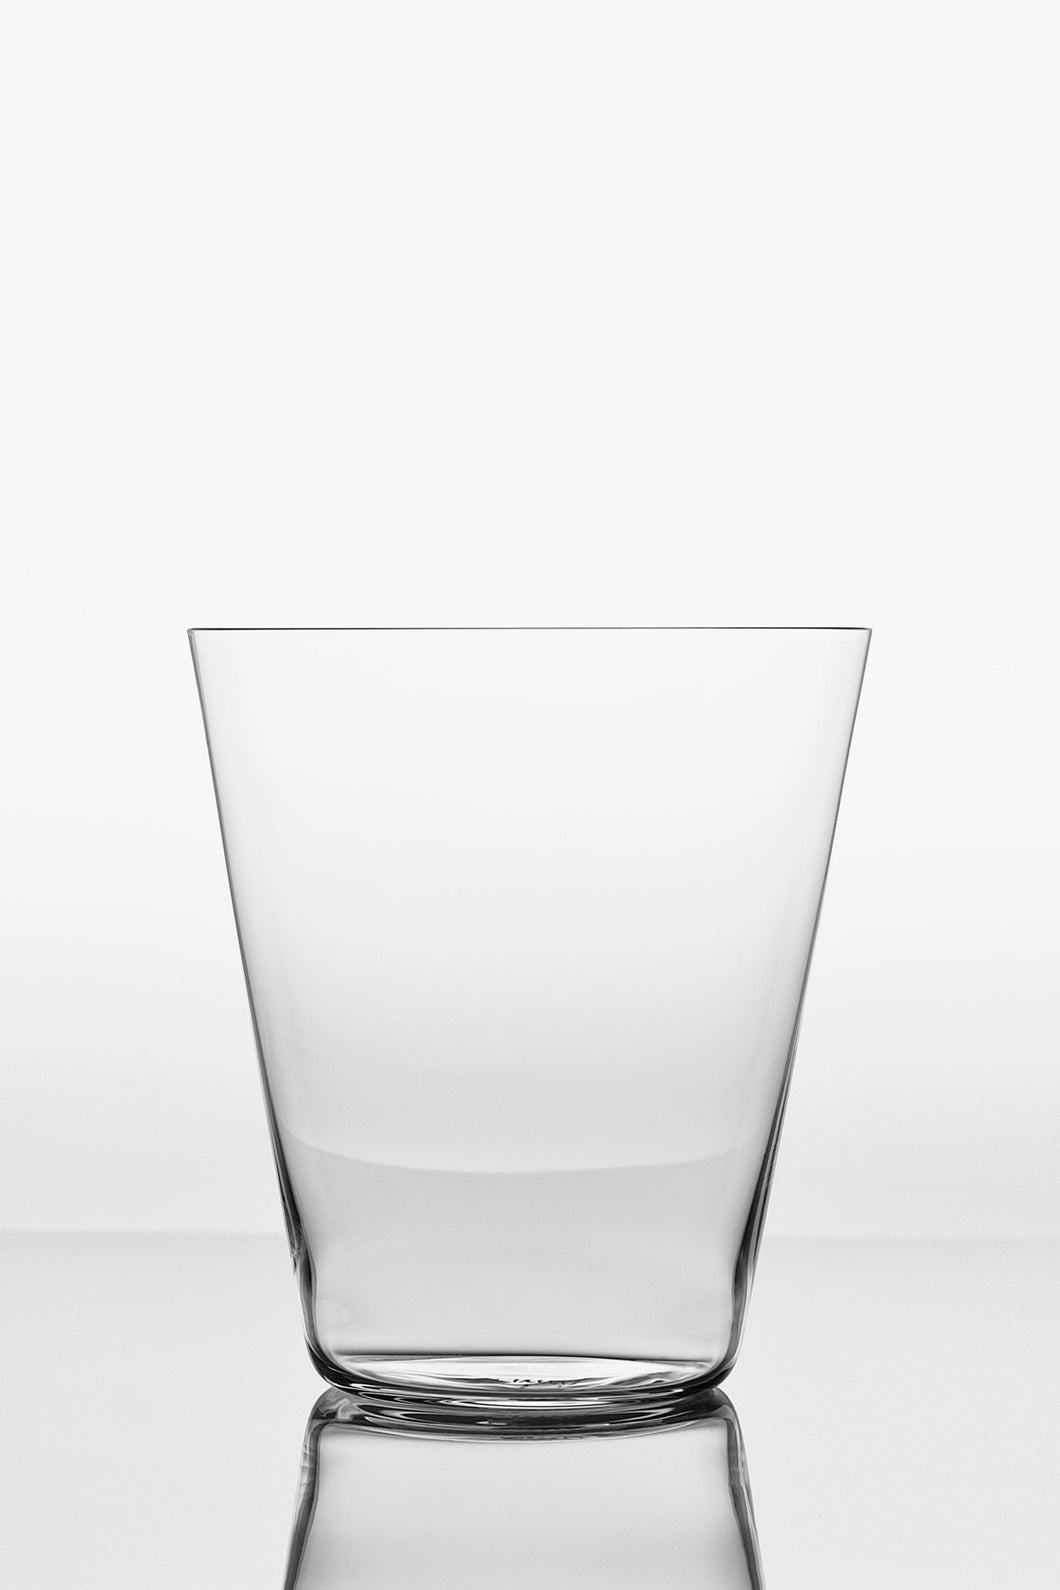 Zalto Coupe Cocktail Tumbler Glass